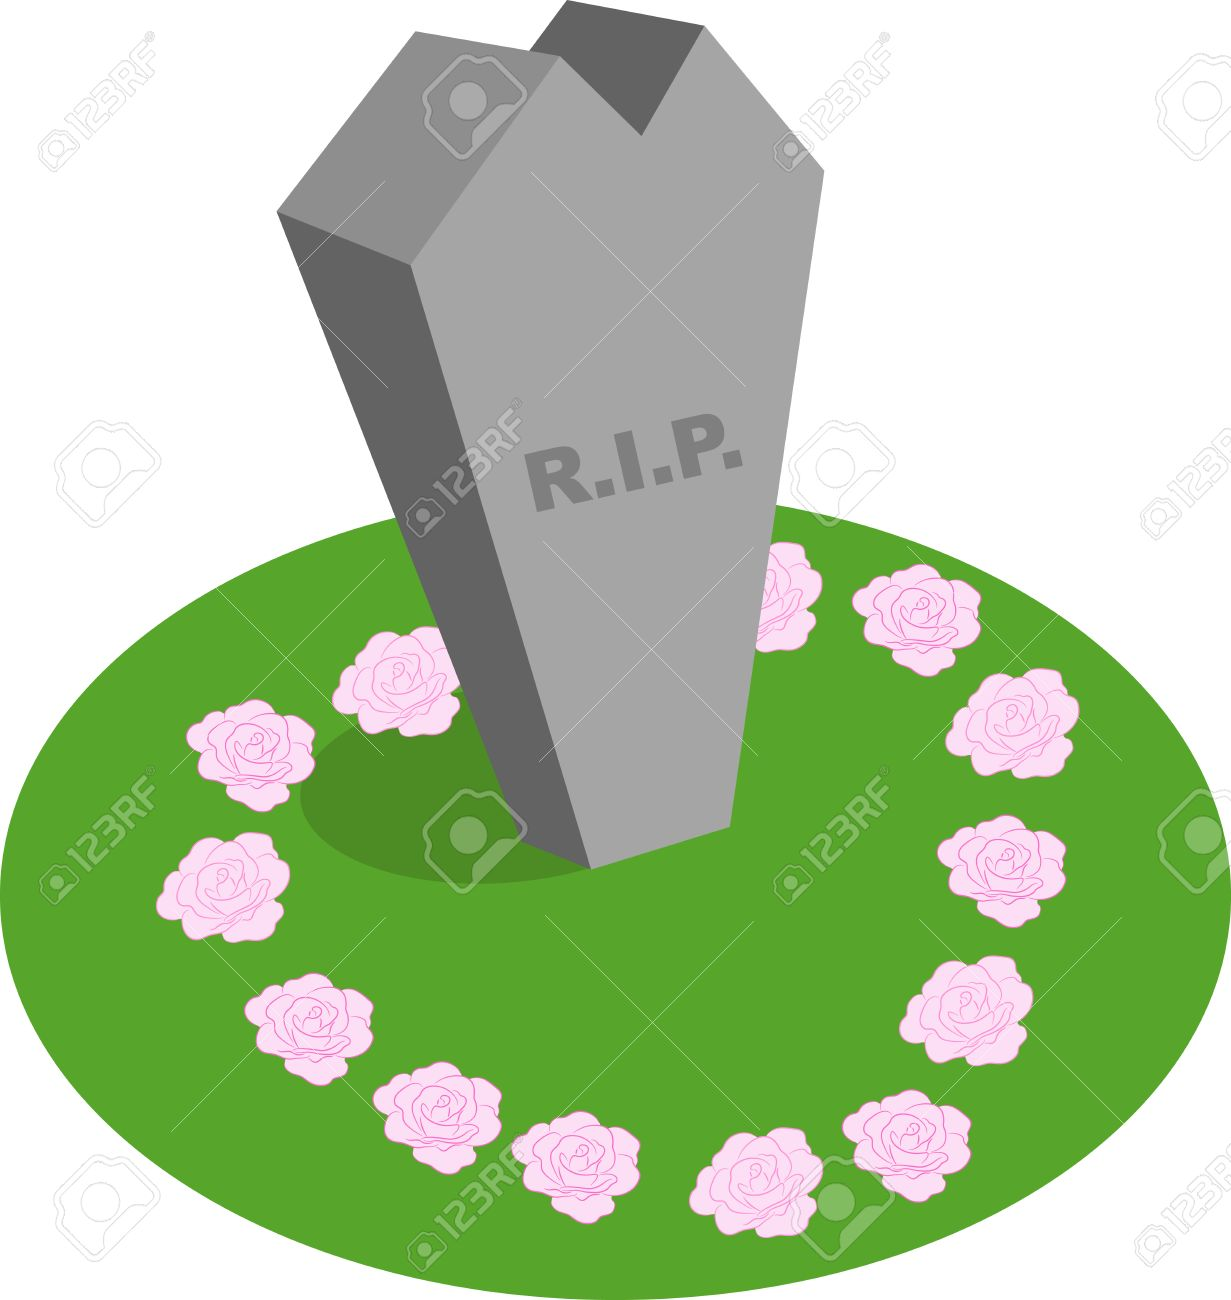 Illustration of a cartoon abstract tombstone with R.I.P written on it. Stock Vector - 7580487